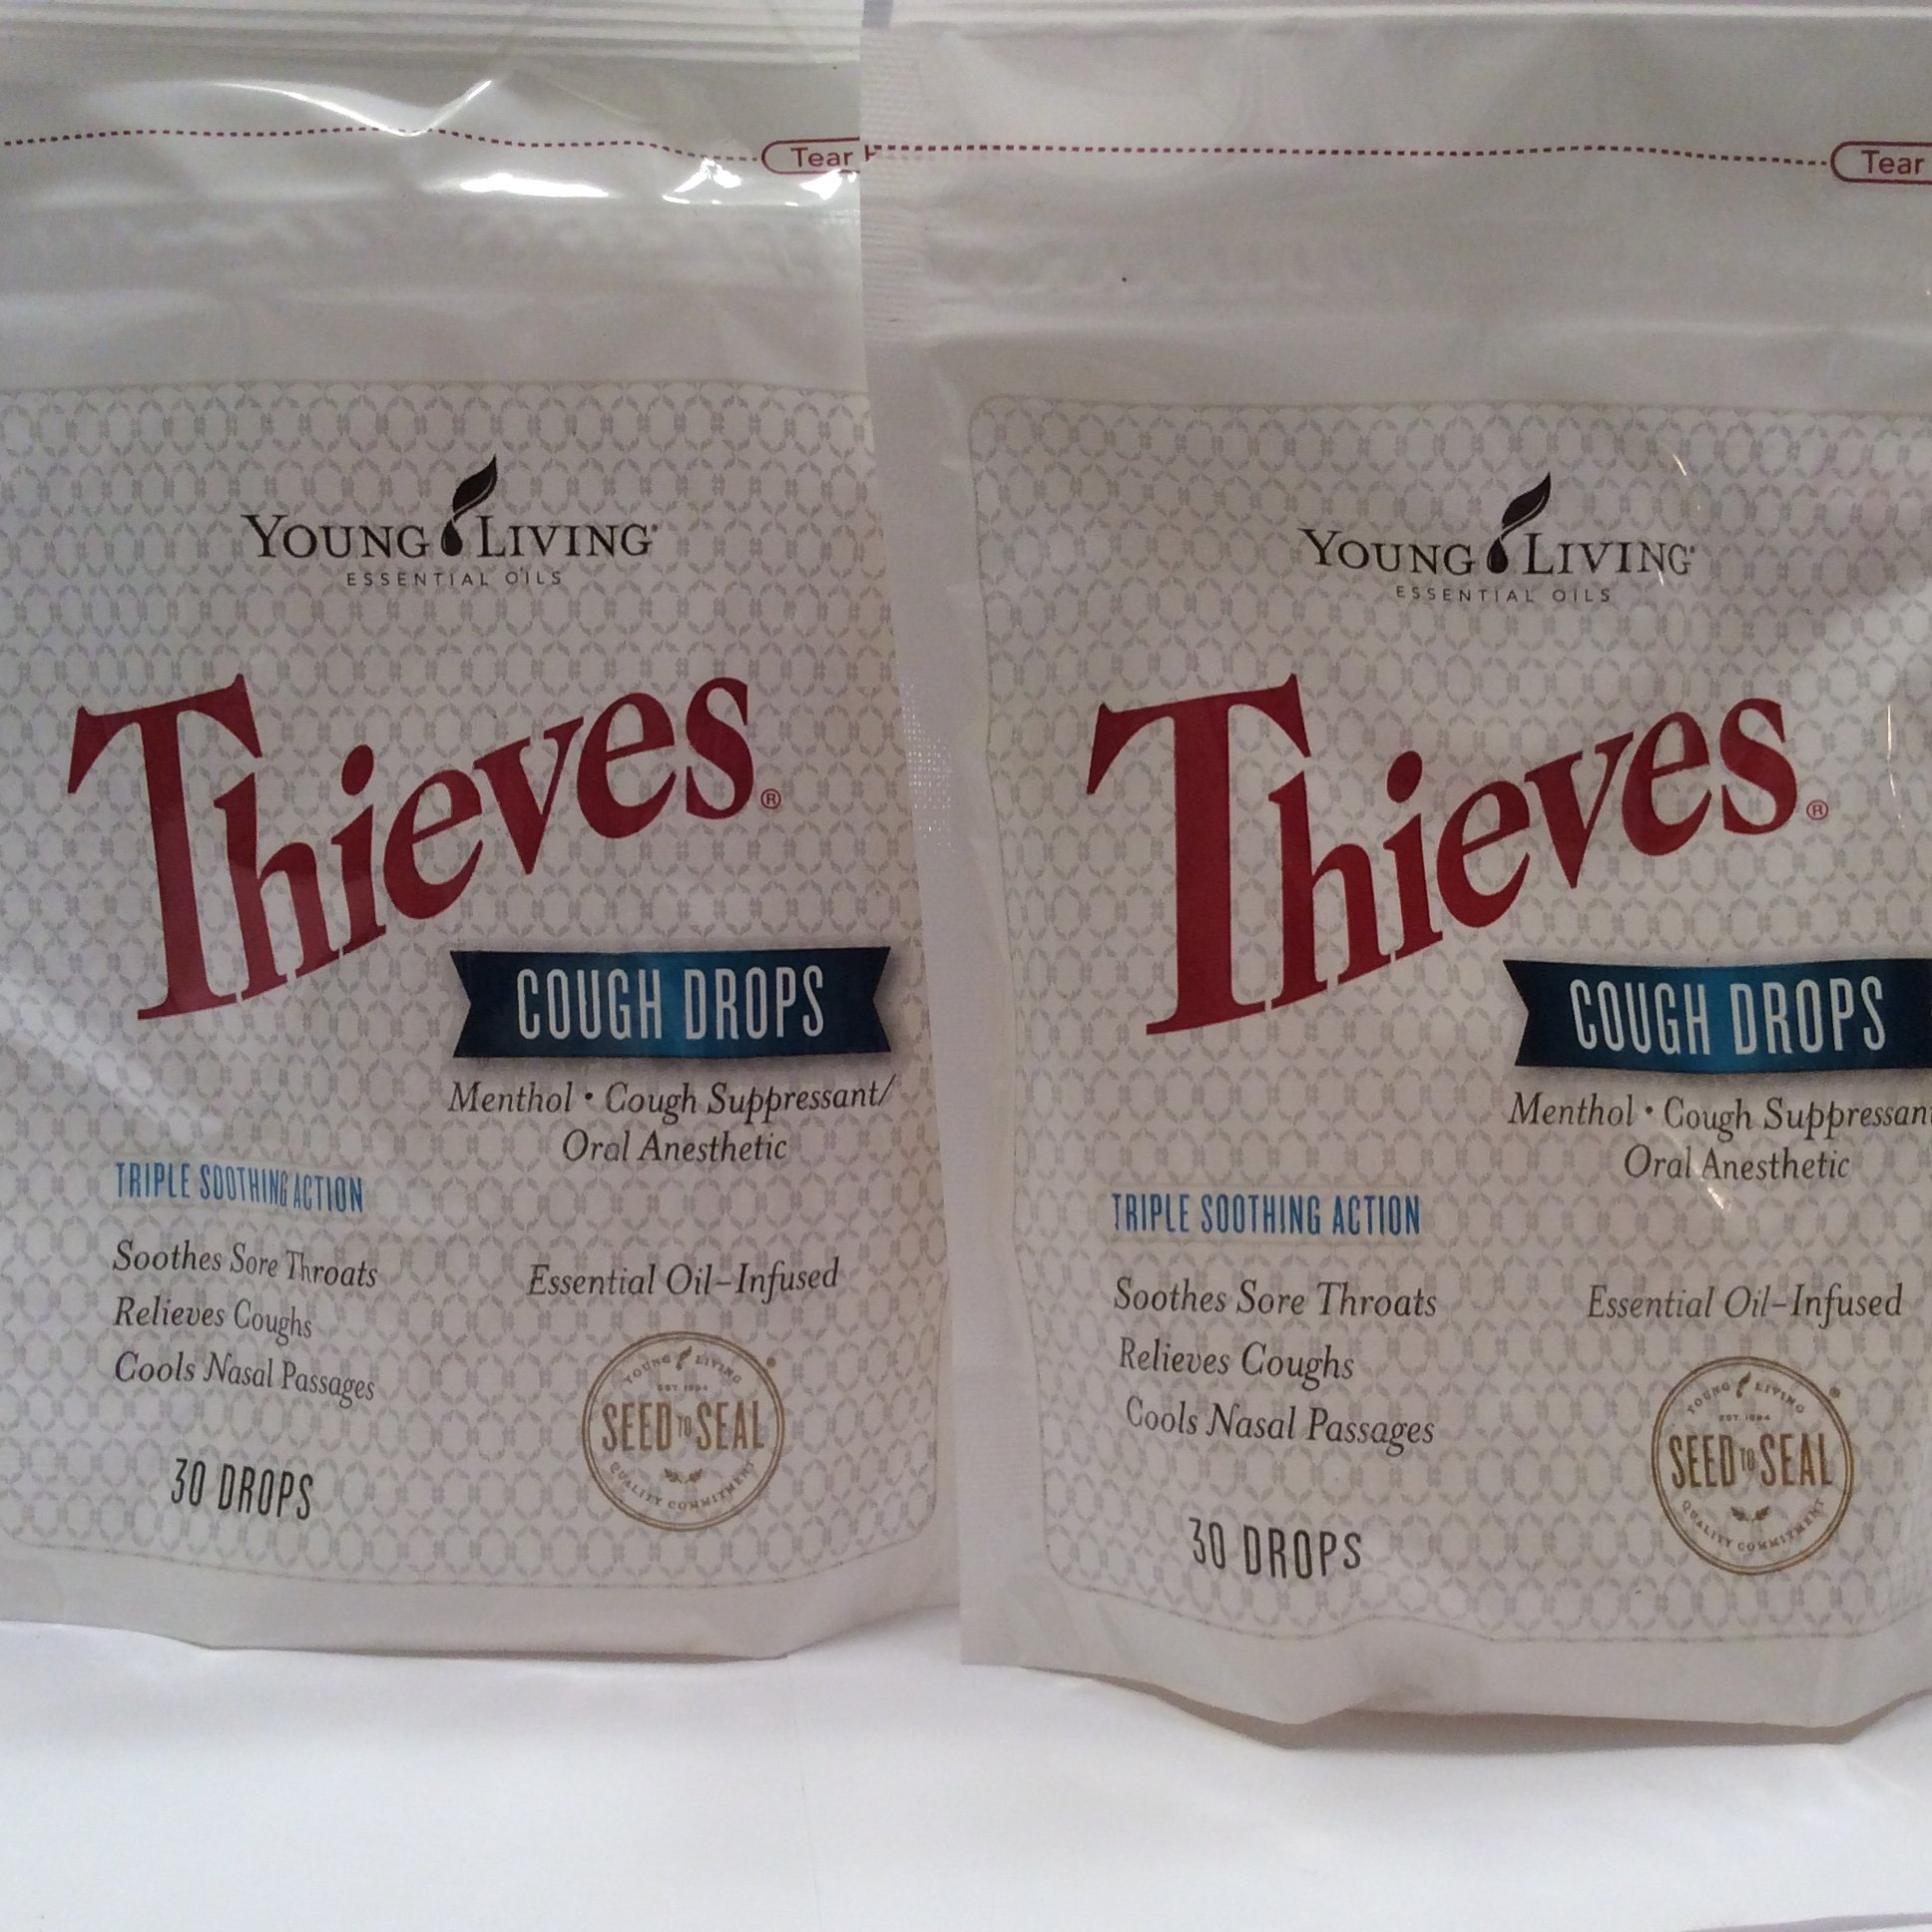 Thieves Cough Drops 30 Ct ( 2 packages ) Essential Oil Infused by Young Living Essential Oil by Young Living